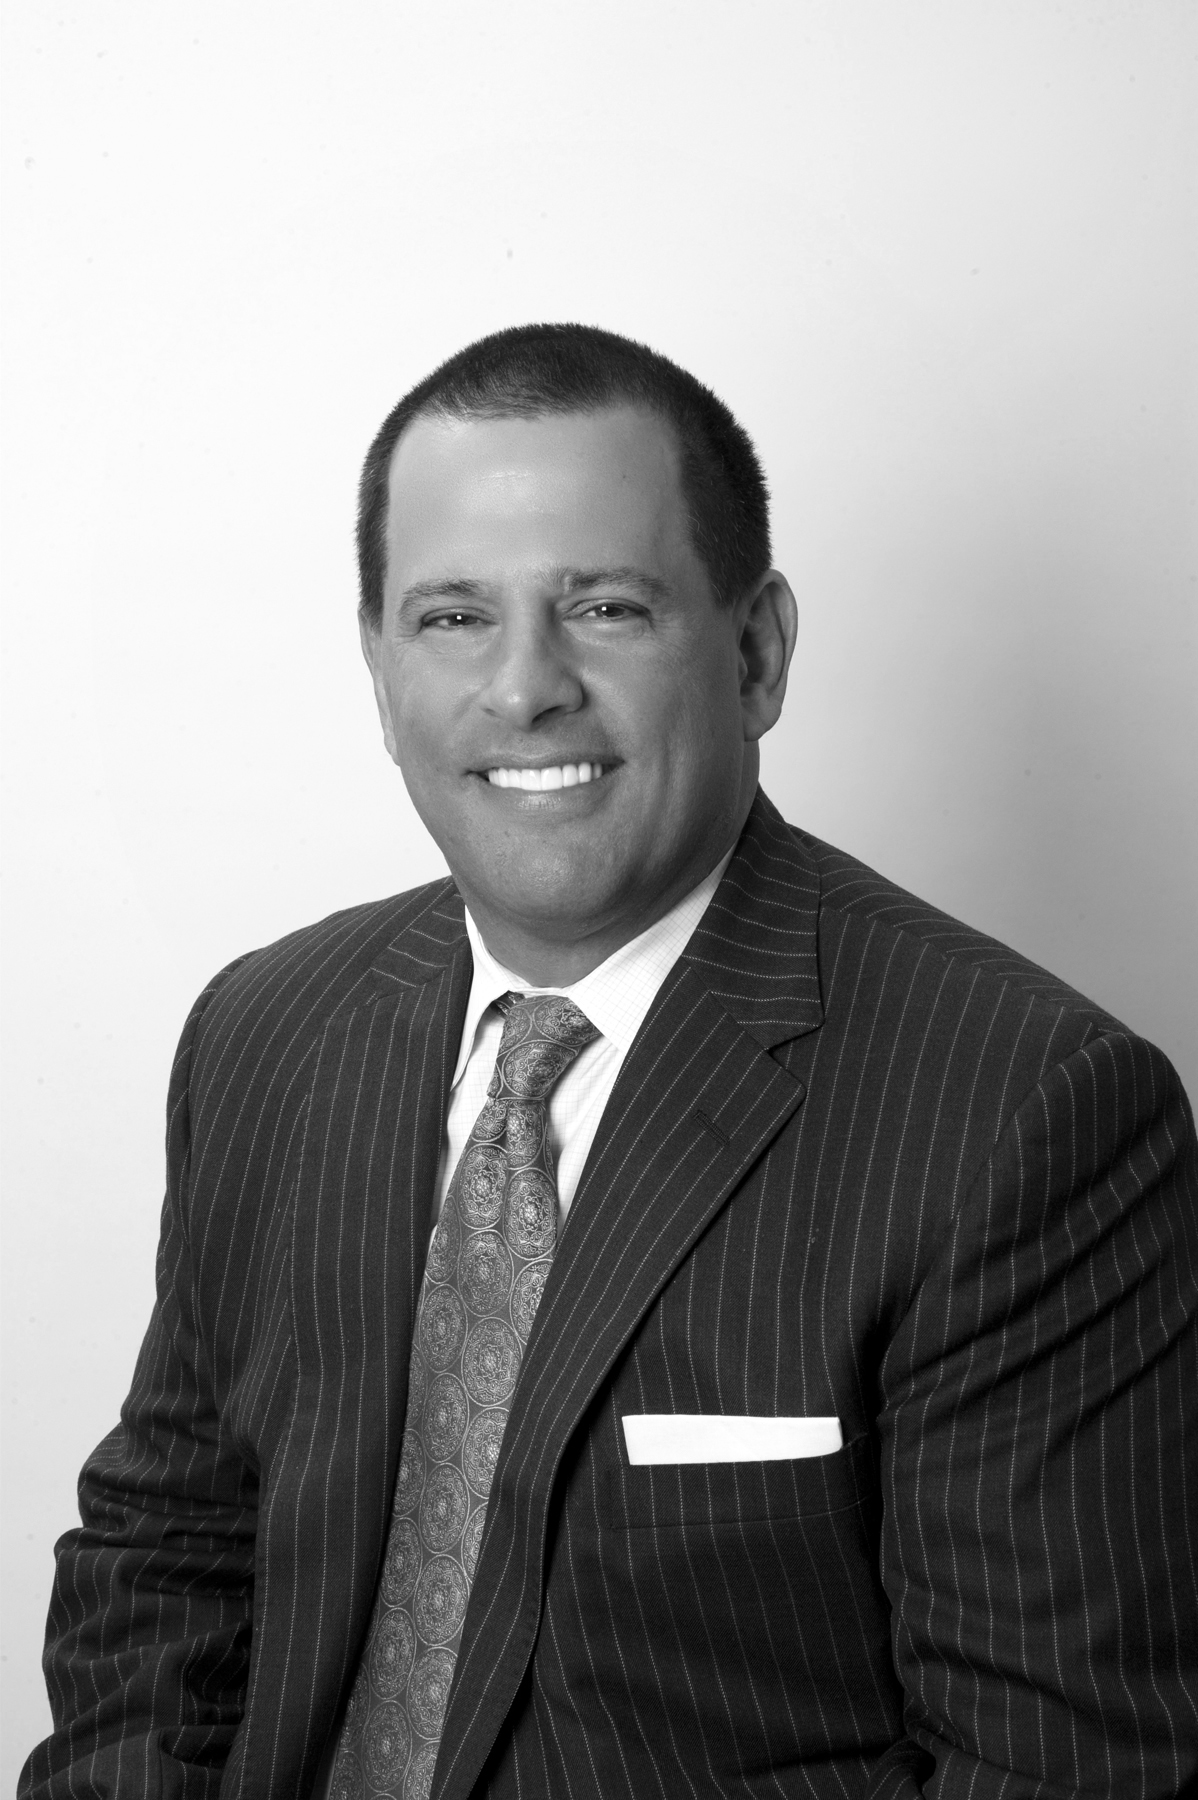 Christopher McMahon, financial advisor Bridgeville PA